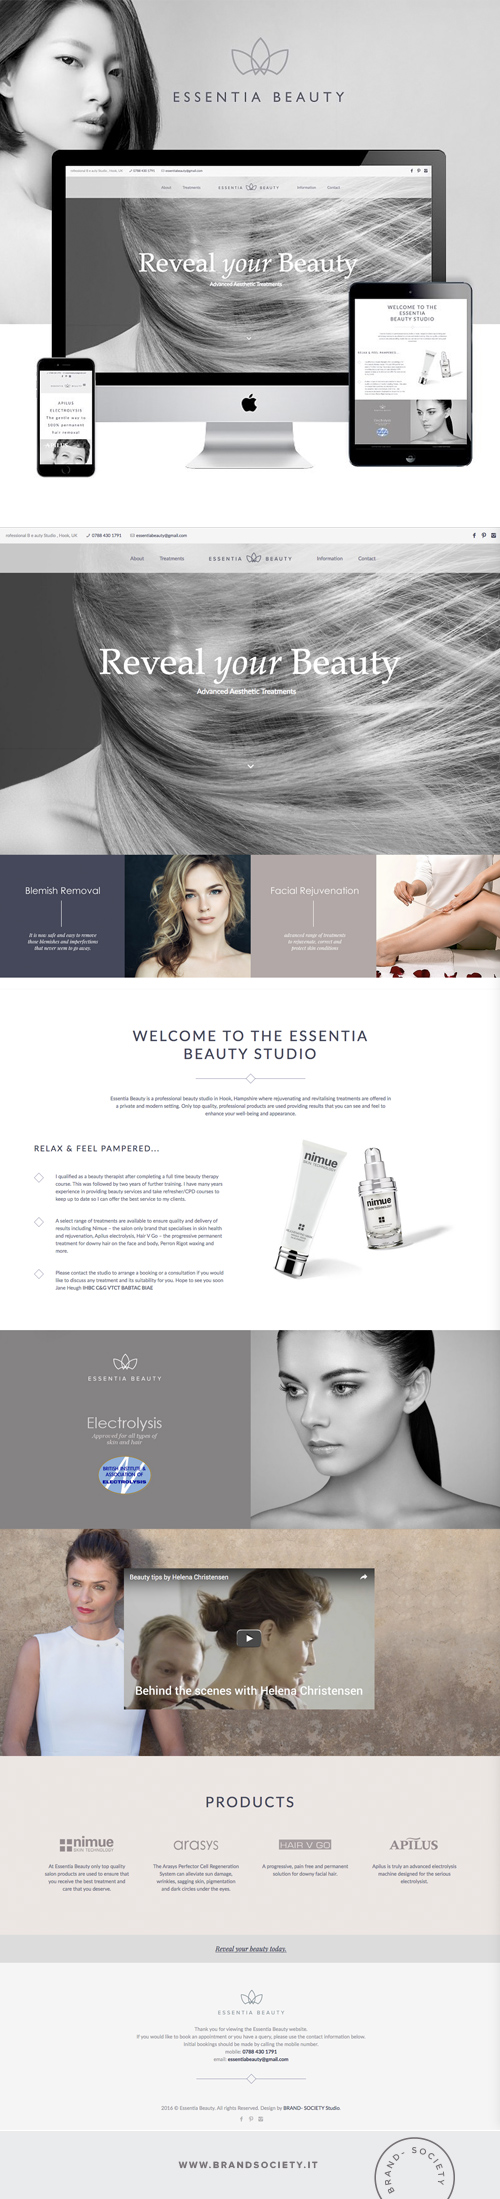 ESSENTIA BEAUTY    SERVICES  || WORDPRESS WEBSITE | CUSTOM DESIGN | BRANDING | COLOR PALETTE